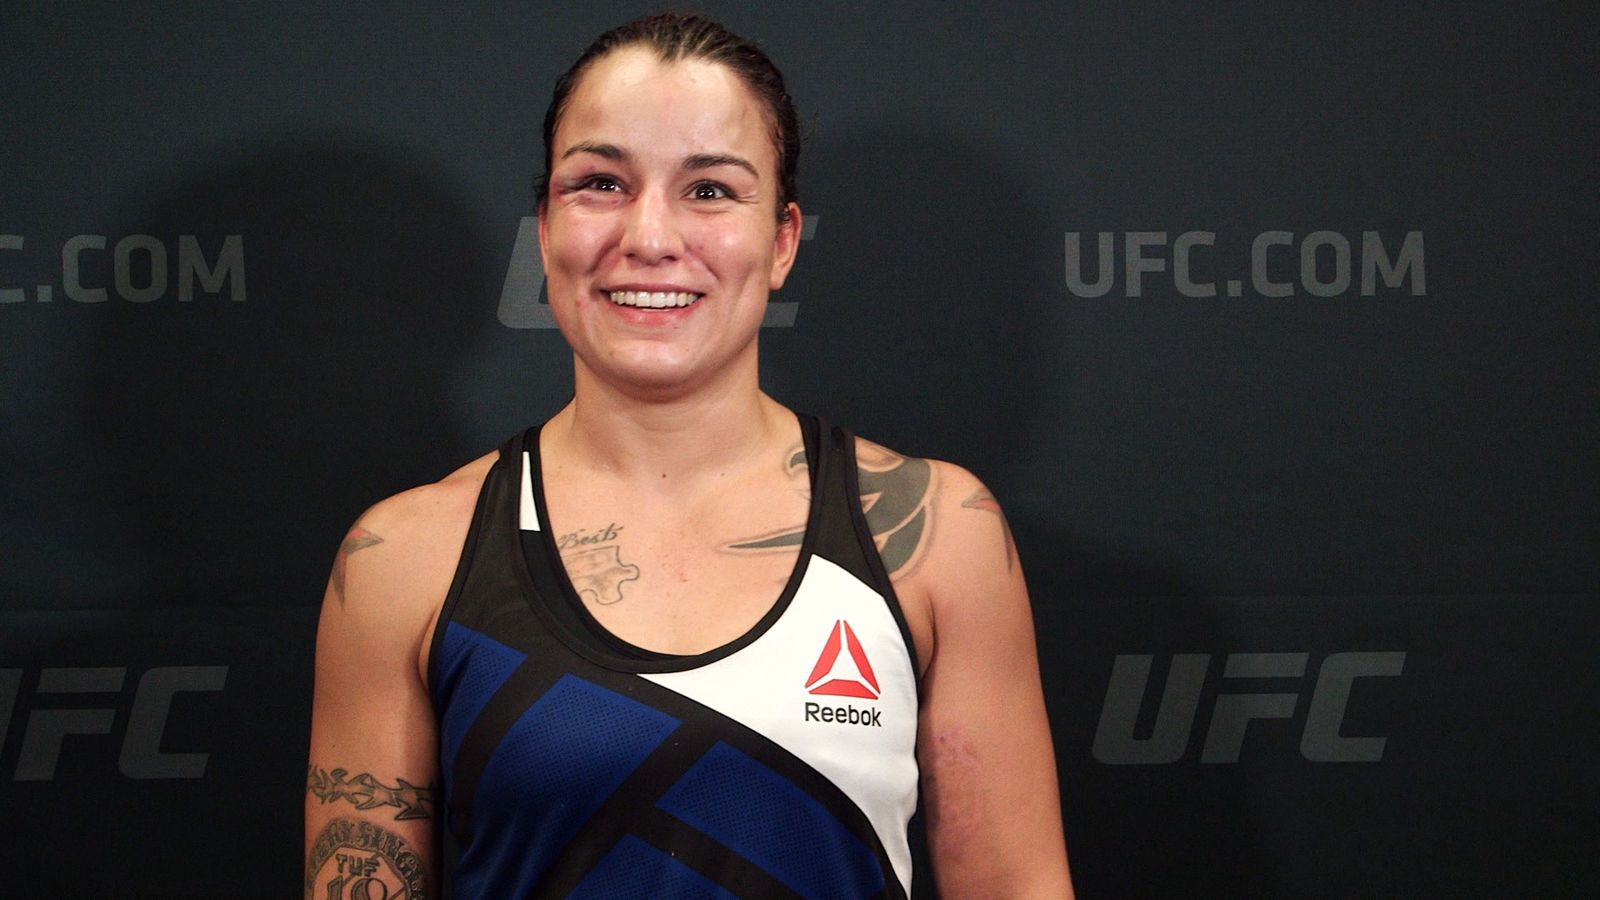 Raquel Pennington naked (85 photo), pictures Feet, iCloud, cameltoe 2017